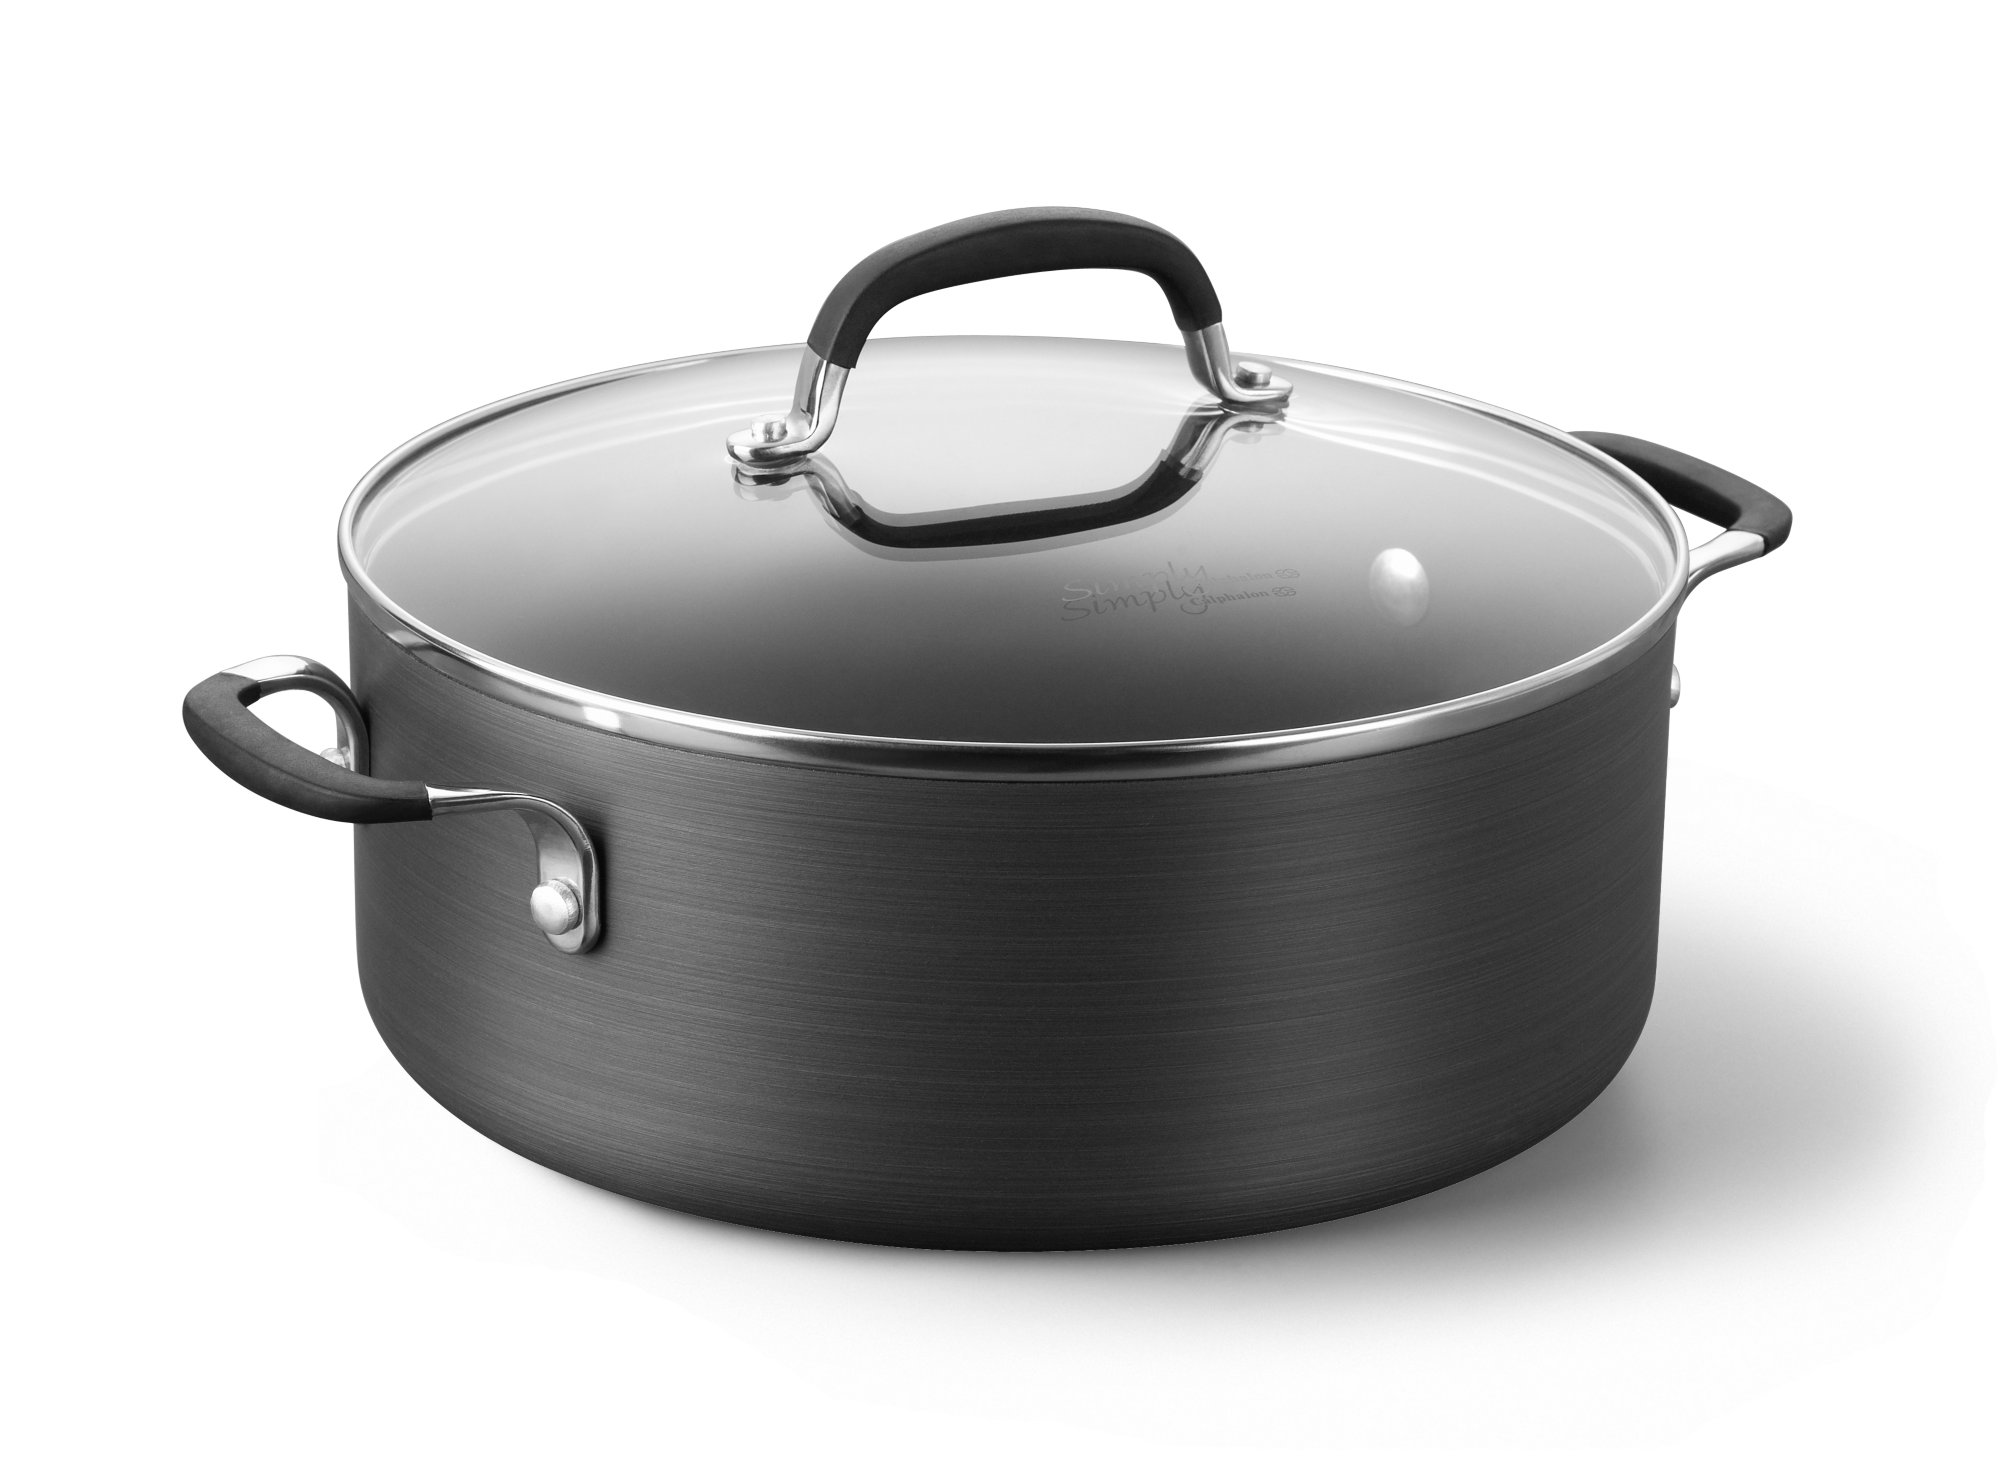 Simply Calphalon Nonstick 5-qt. Chili Pot with Cover